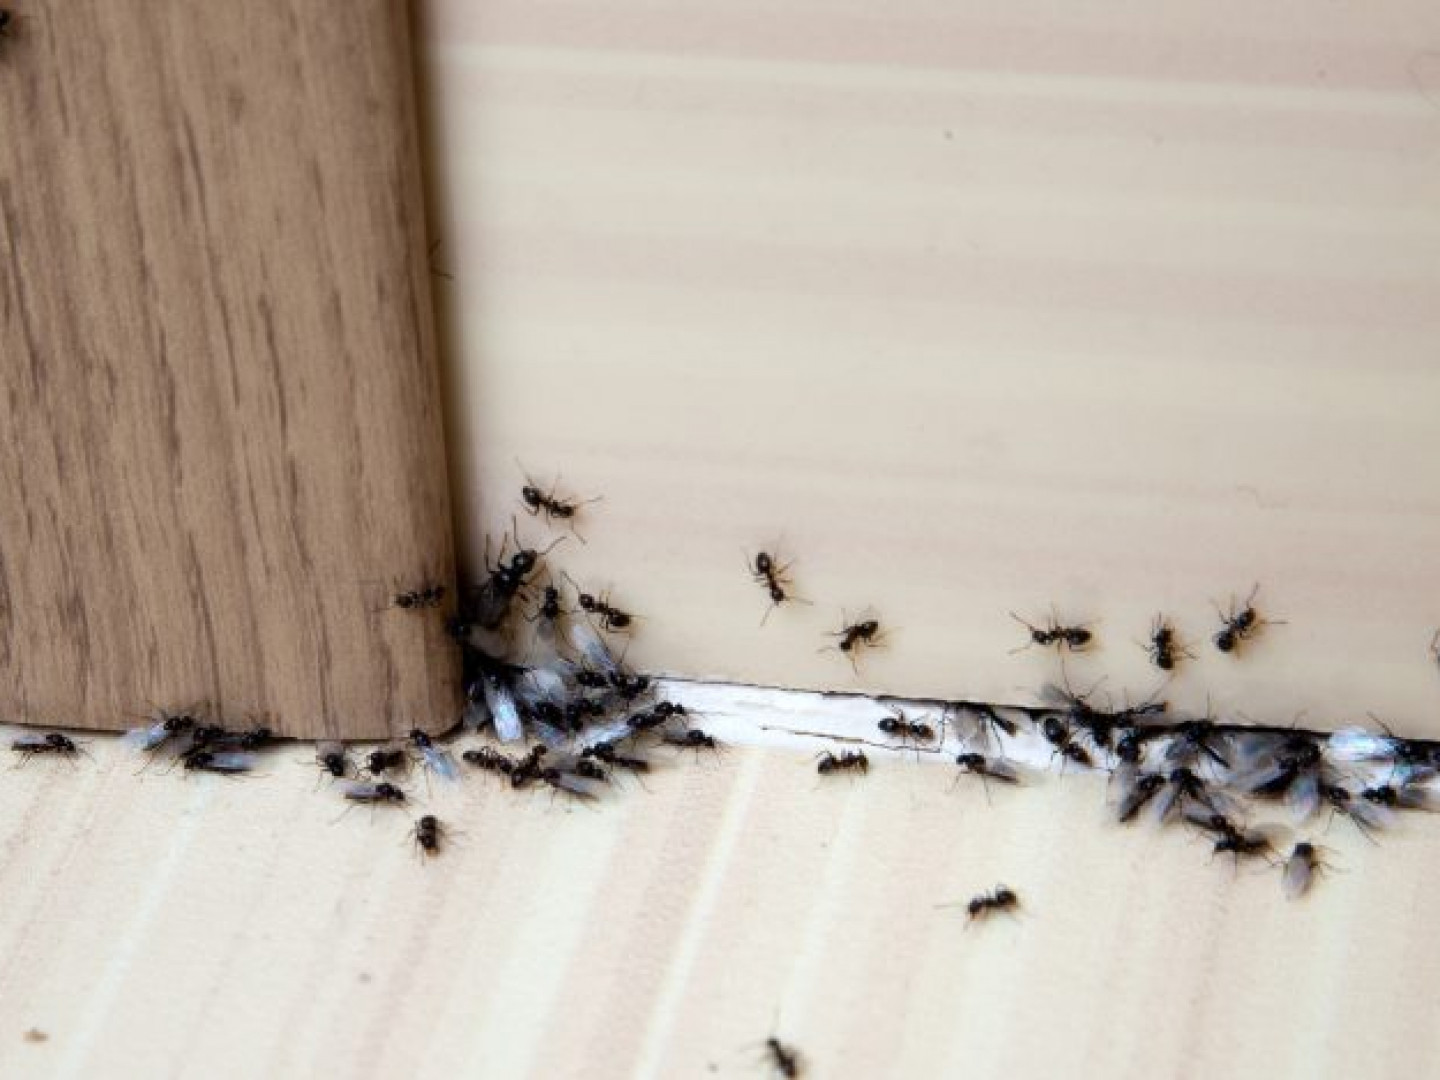 Ant Control services in Amelia, OH